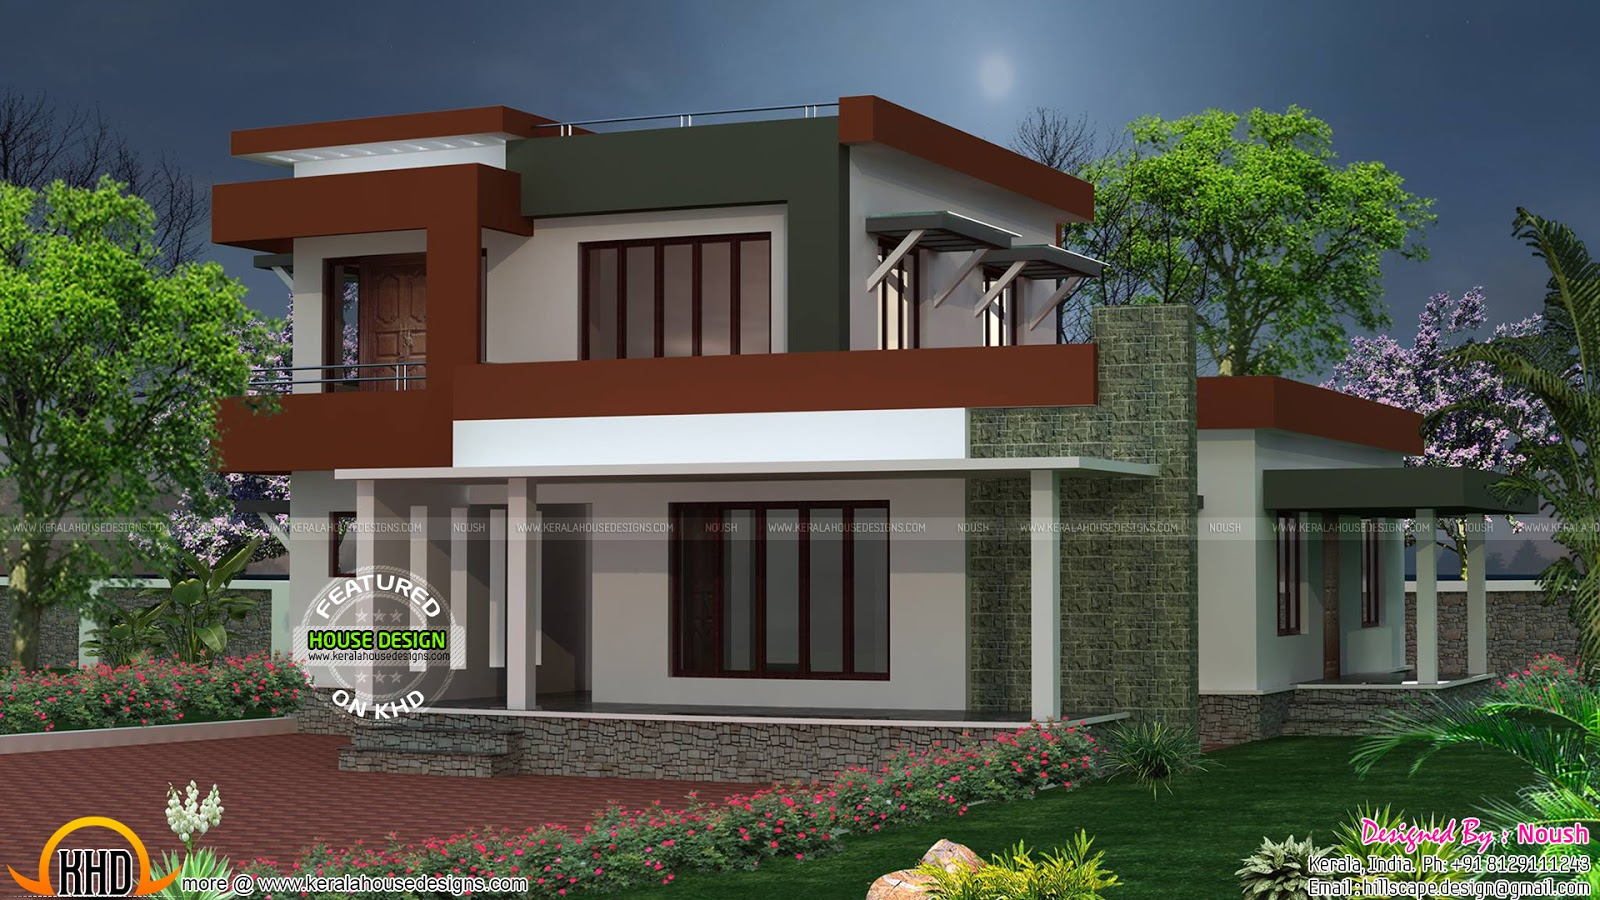 sq ft box type house plan kerala home design floor plans box house plans home plan collections